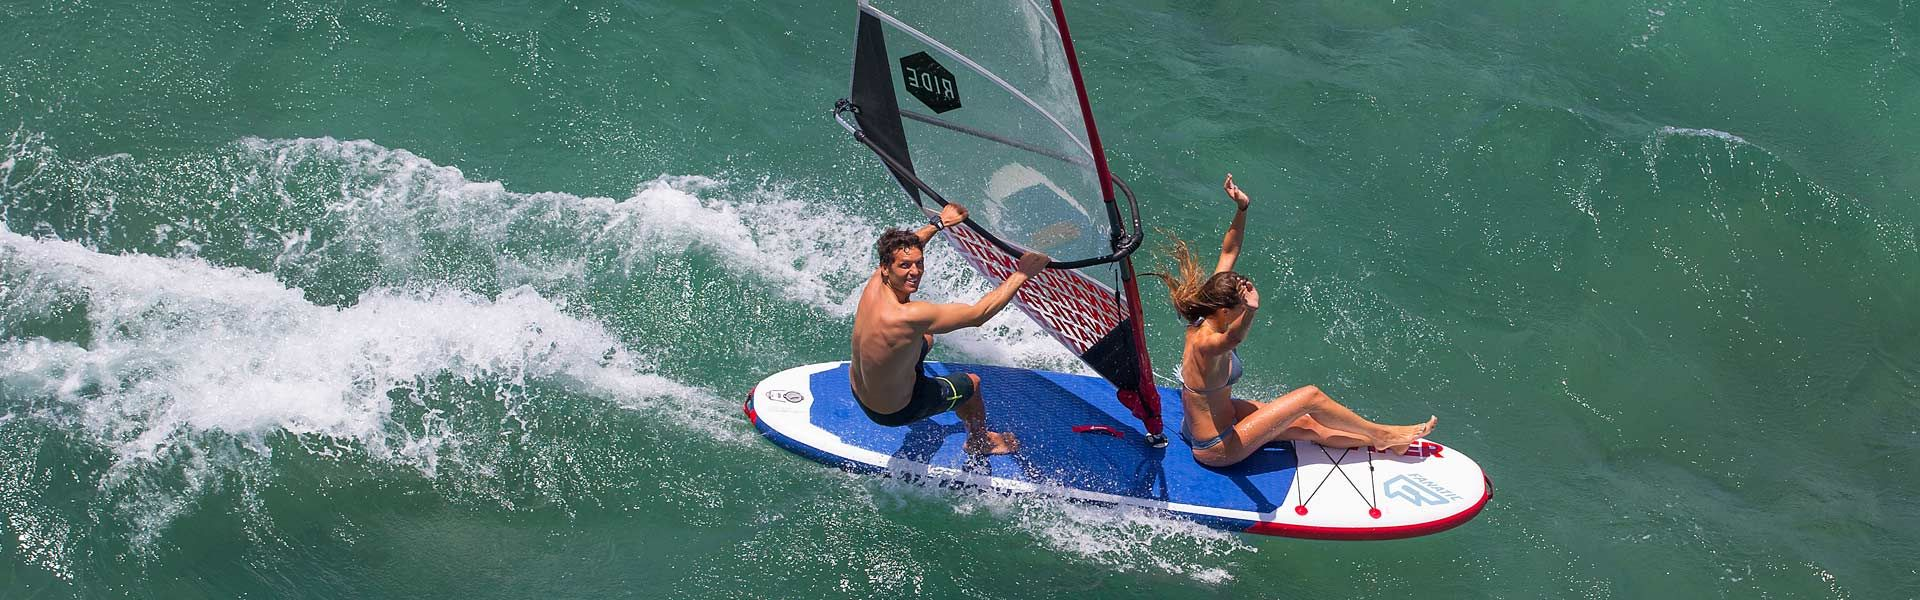 Windsurfen mit dem Fanatic Viper Air